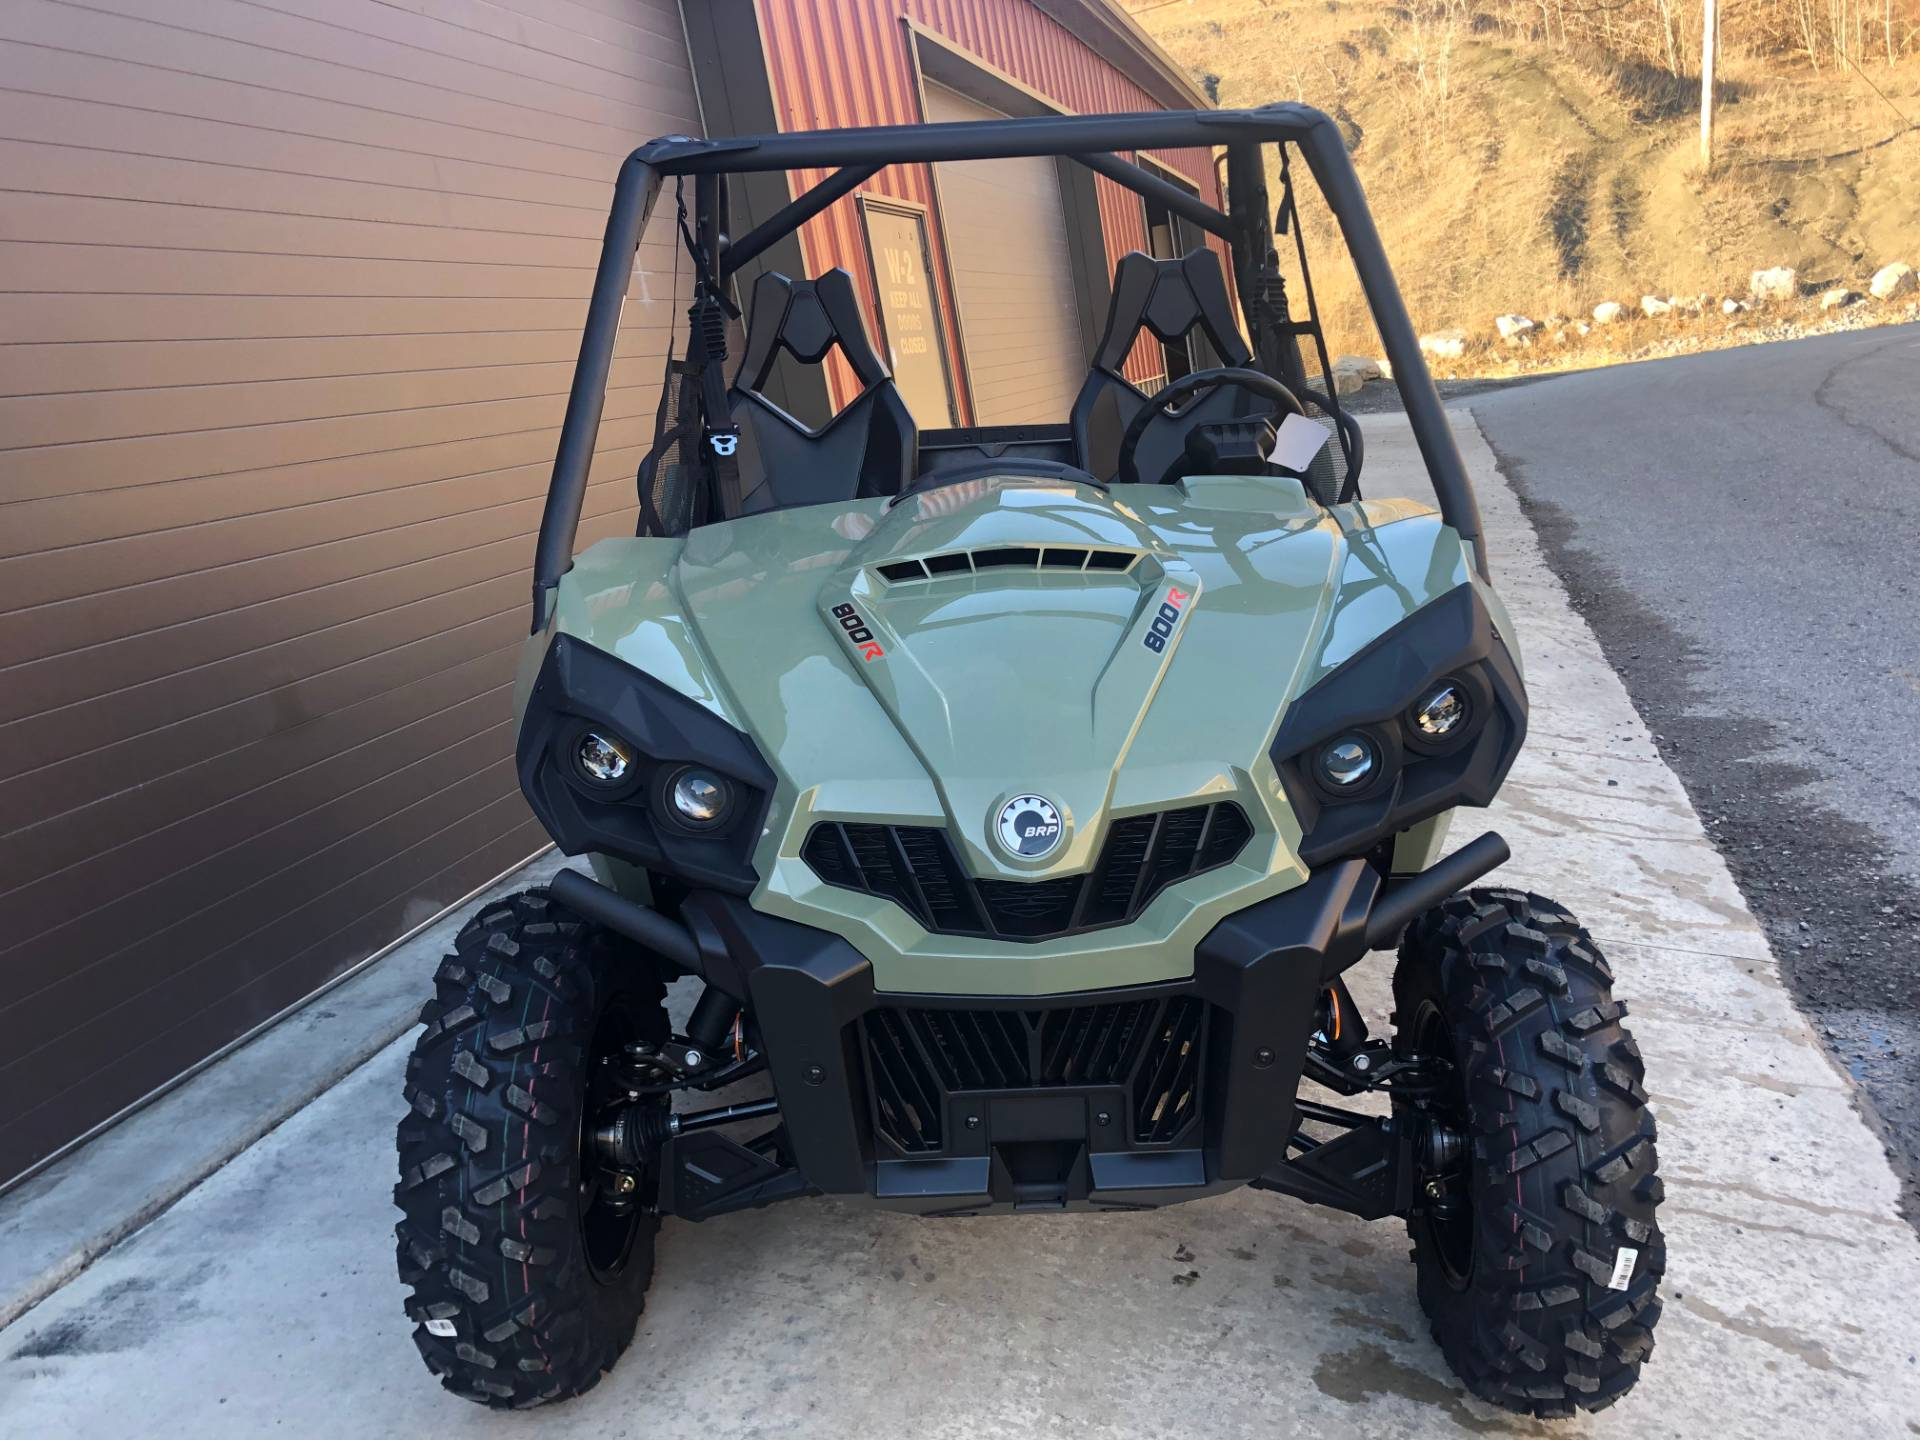 2019 Can-Am Commander DPS 800R in Tyrone, Pennsylvania - Photo 2